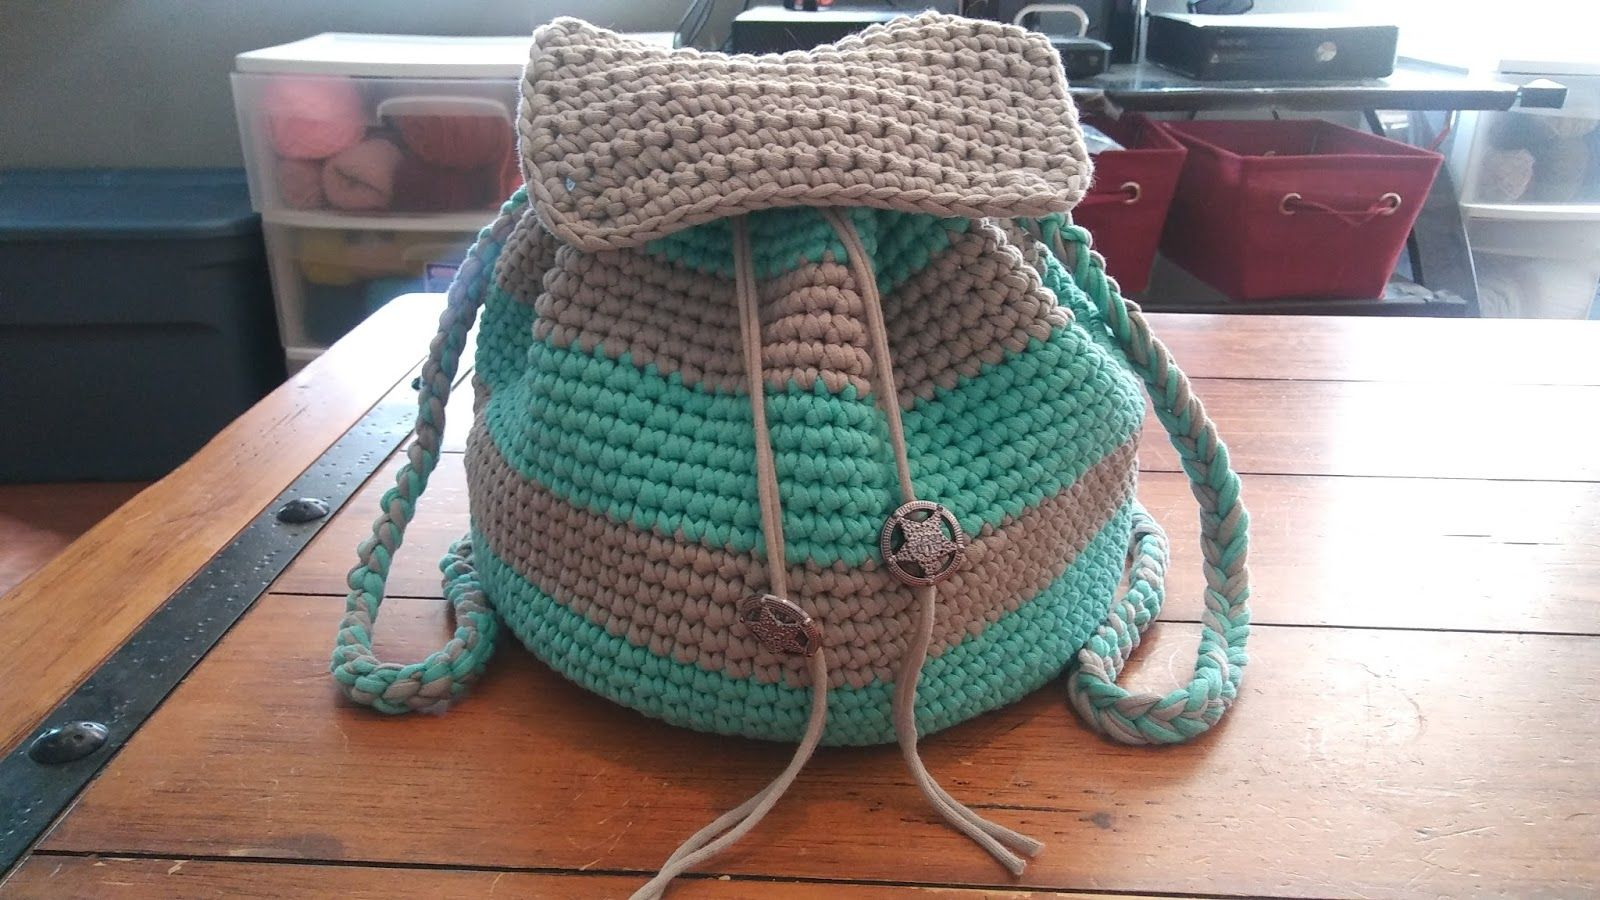 Hello again! A couple days ago I posted a photo of a backpack I made ...